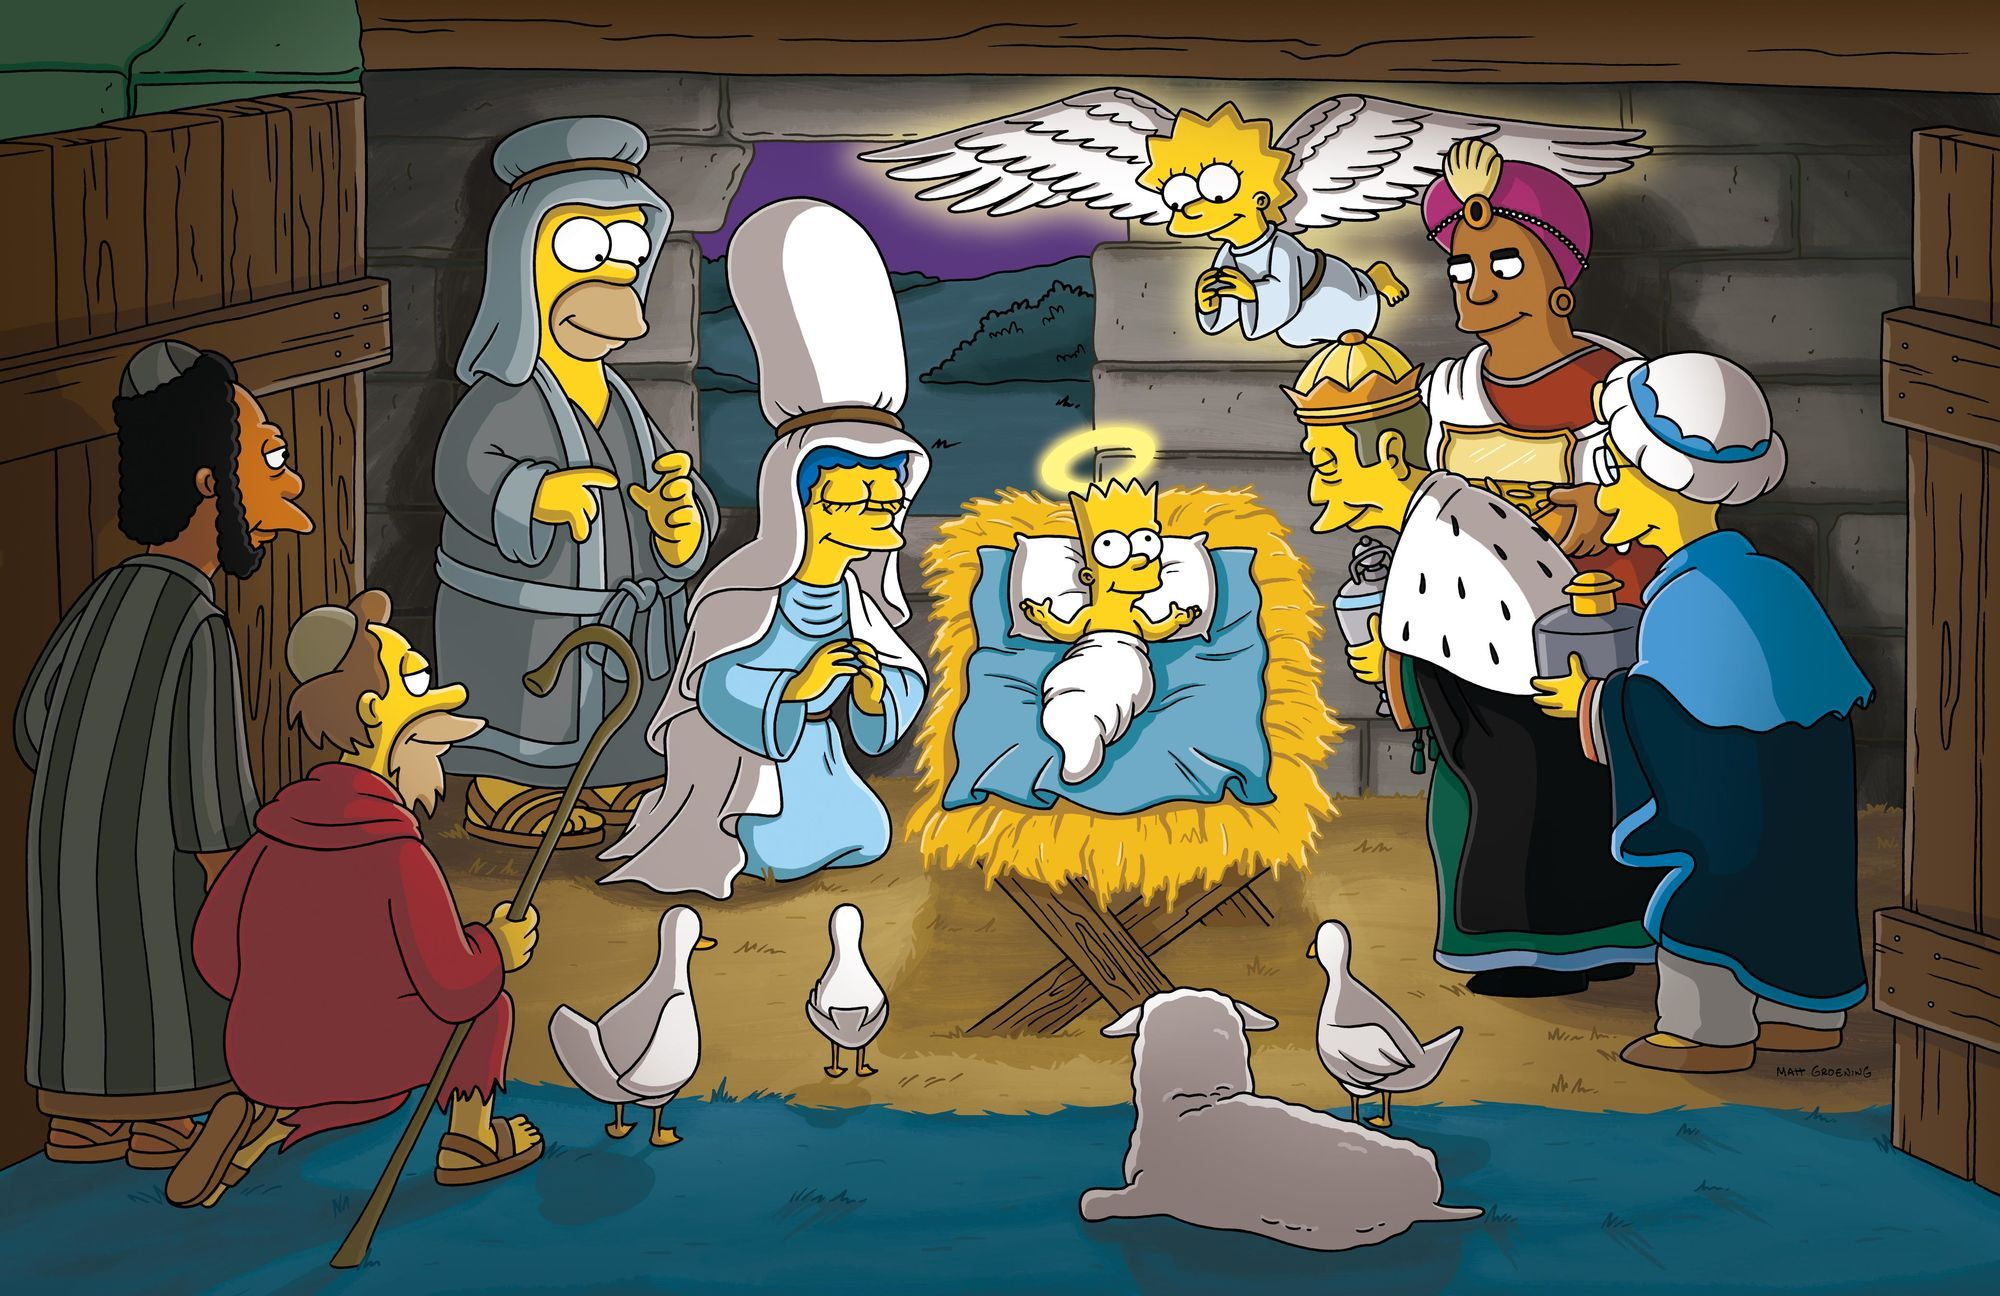 Simpsons Christmas Stories Simpsons Christmas Episodes Simpsons Art The Simpsons